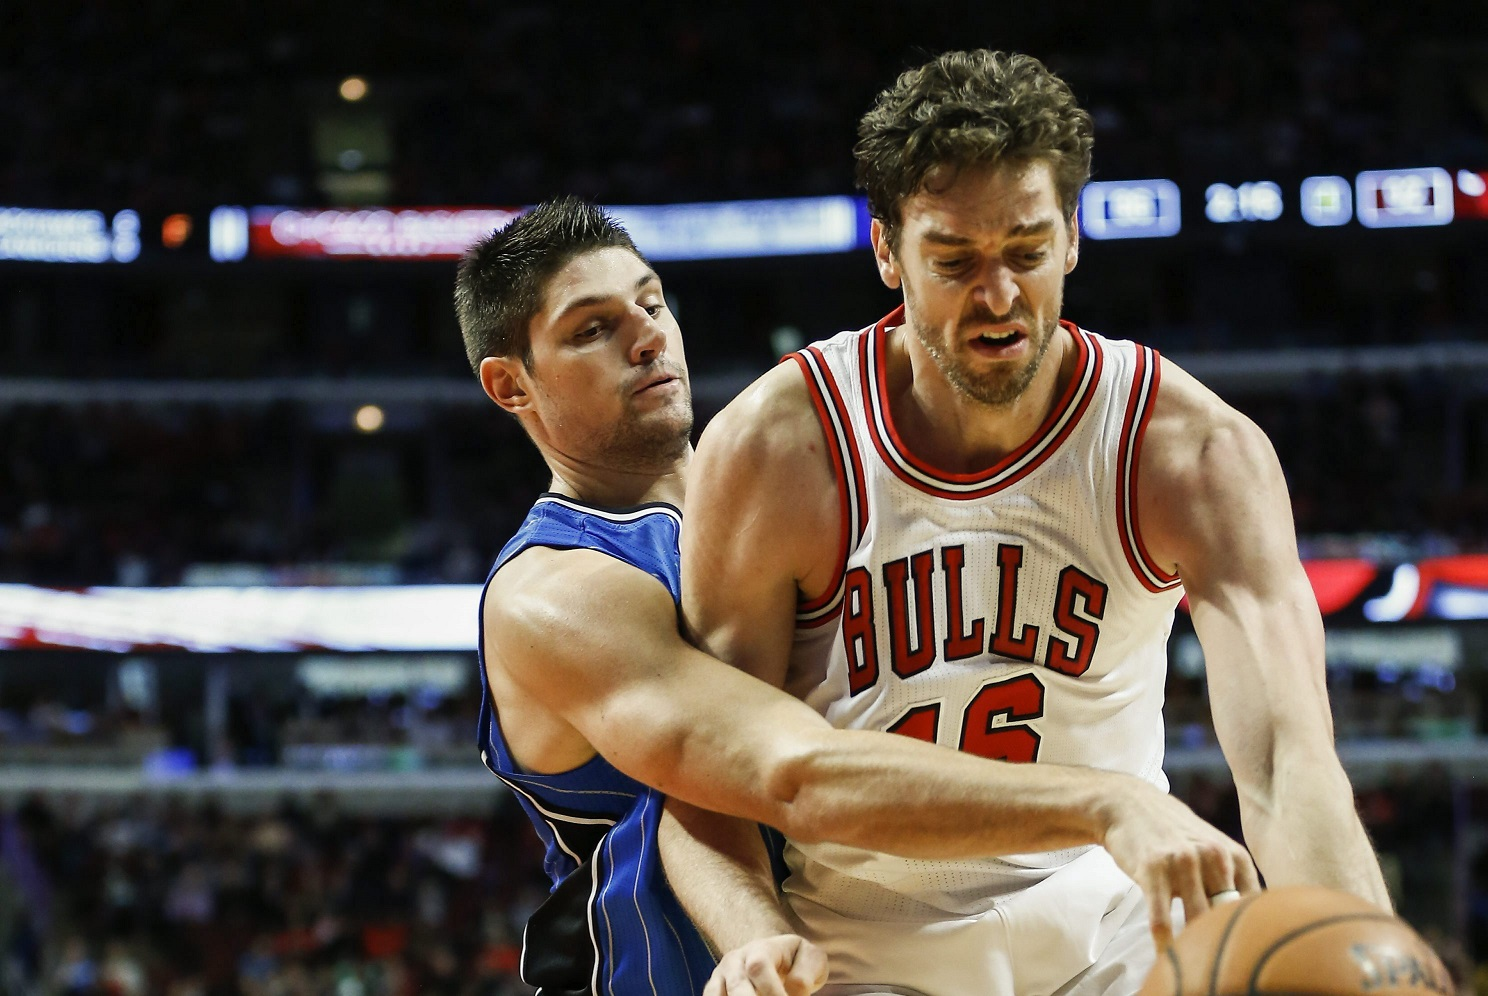 ORLANDO MAGIC VS CHICAGO BULLS